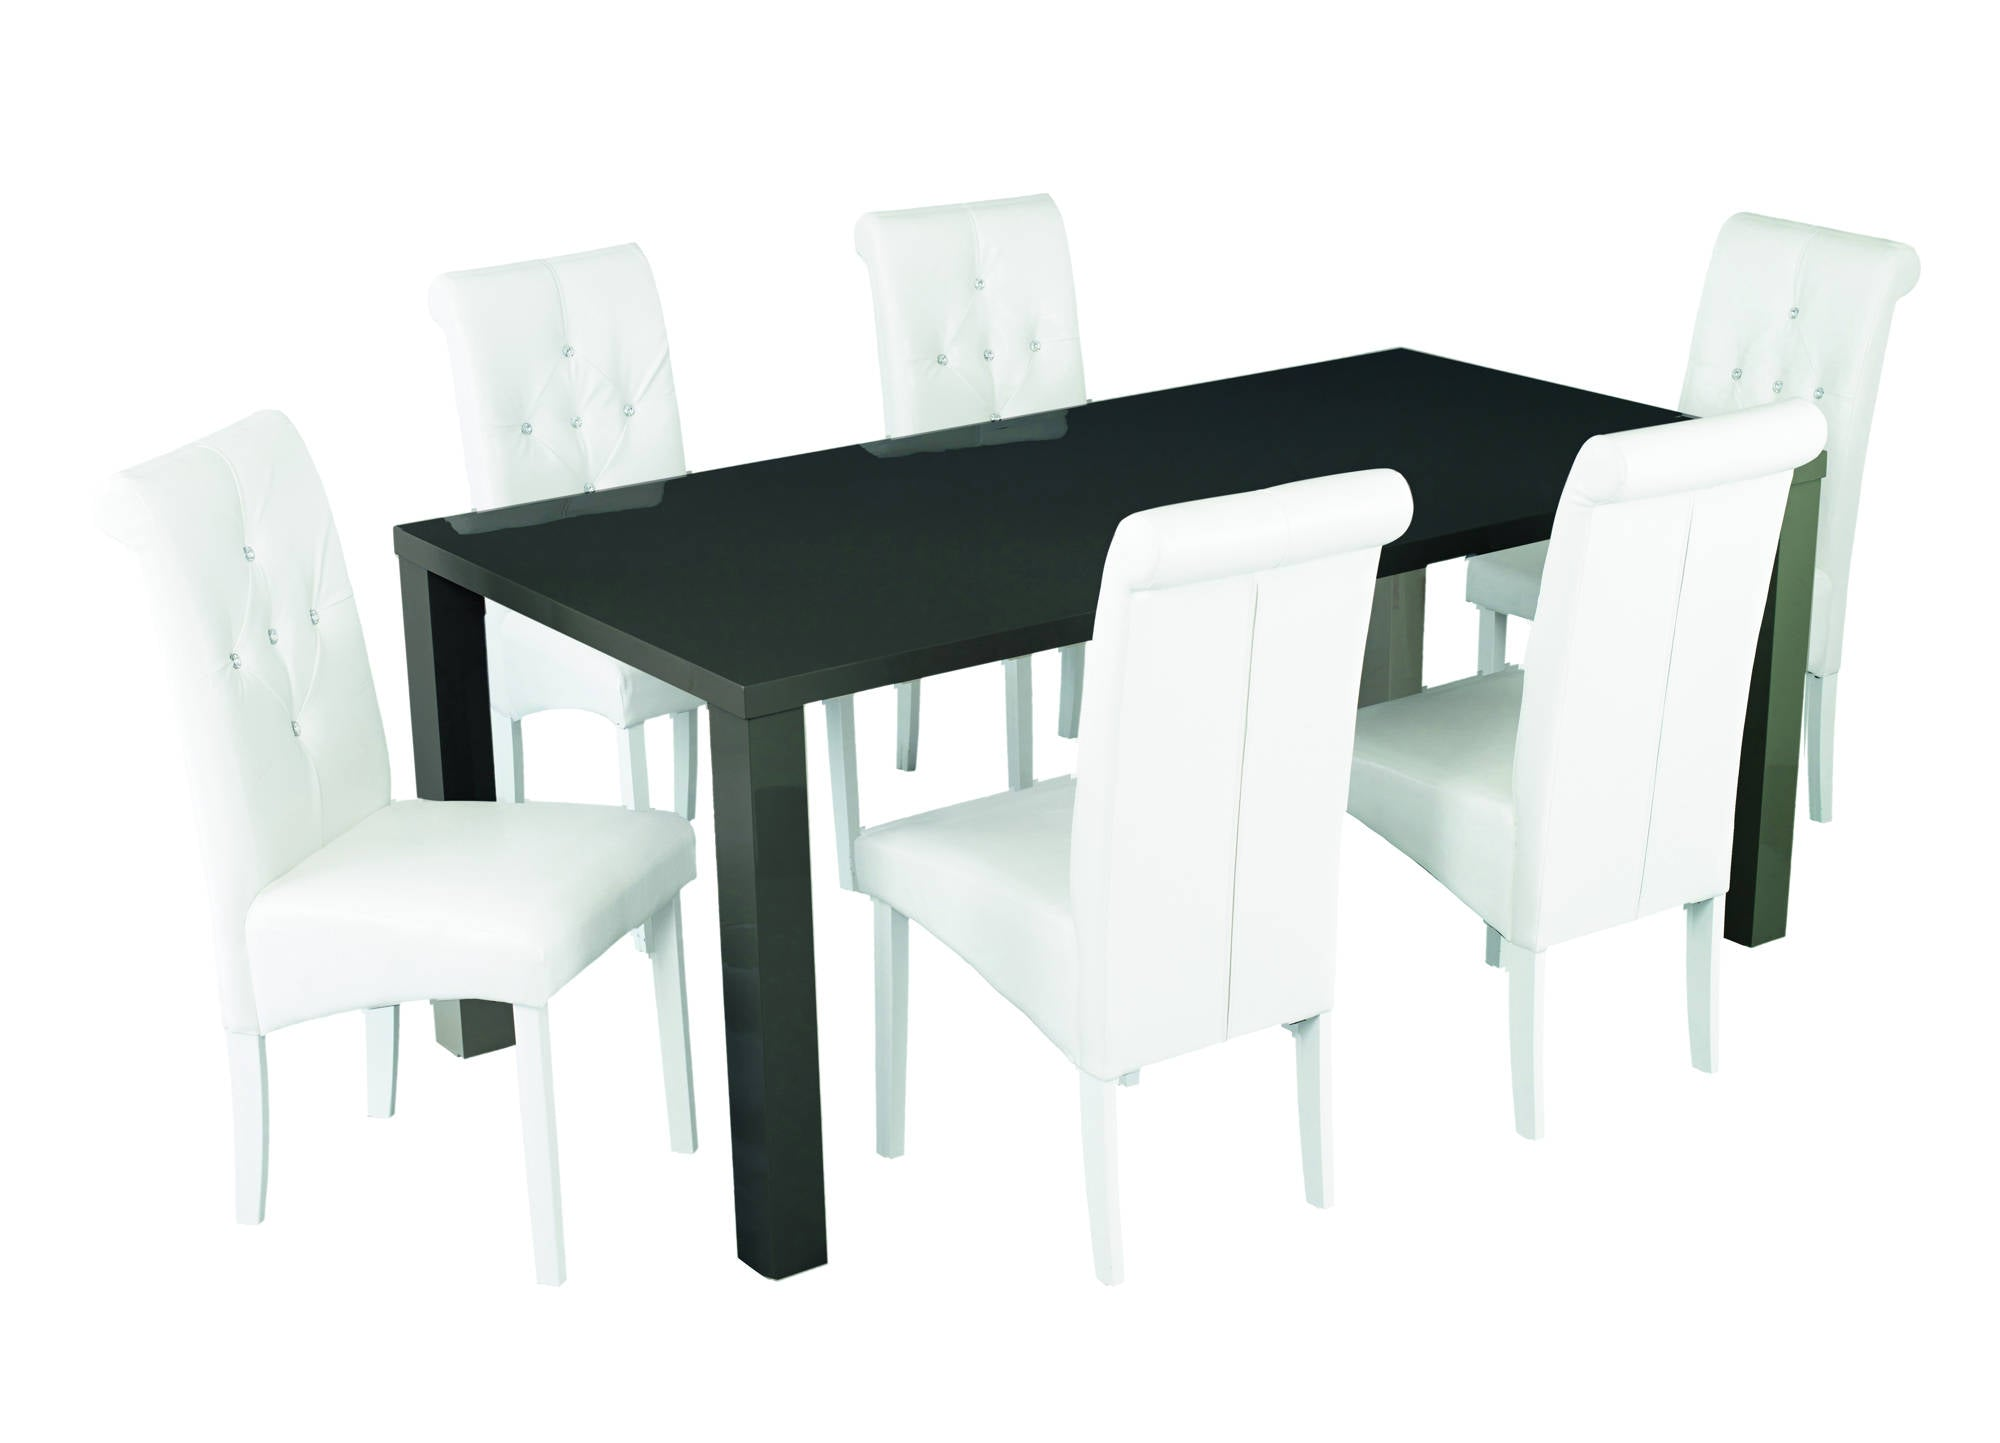 Sterling Large Dining Table in Charcoal